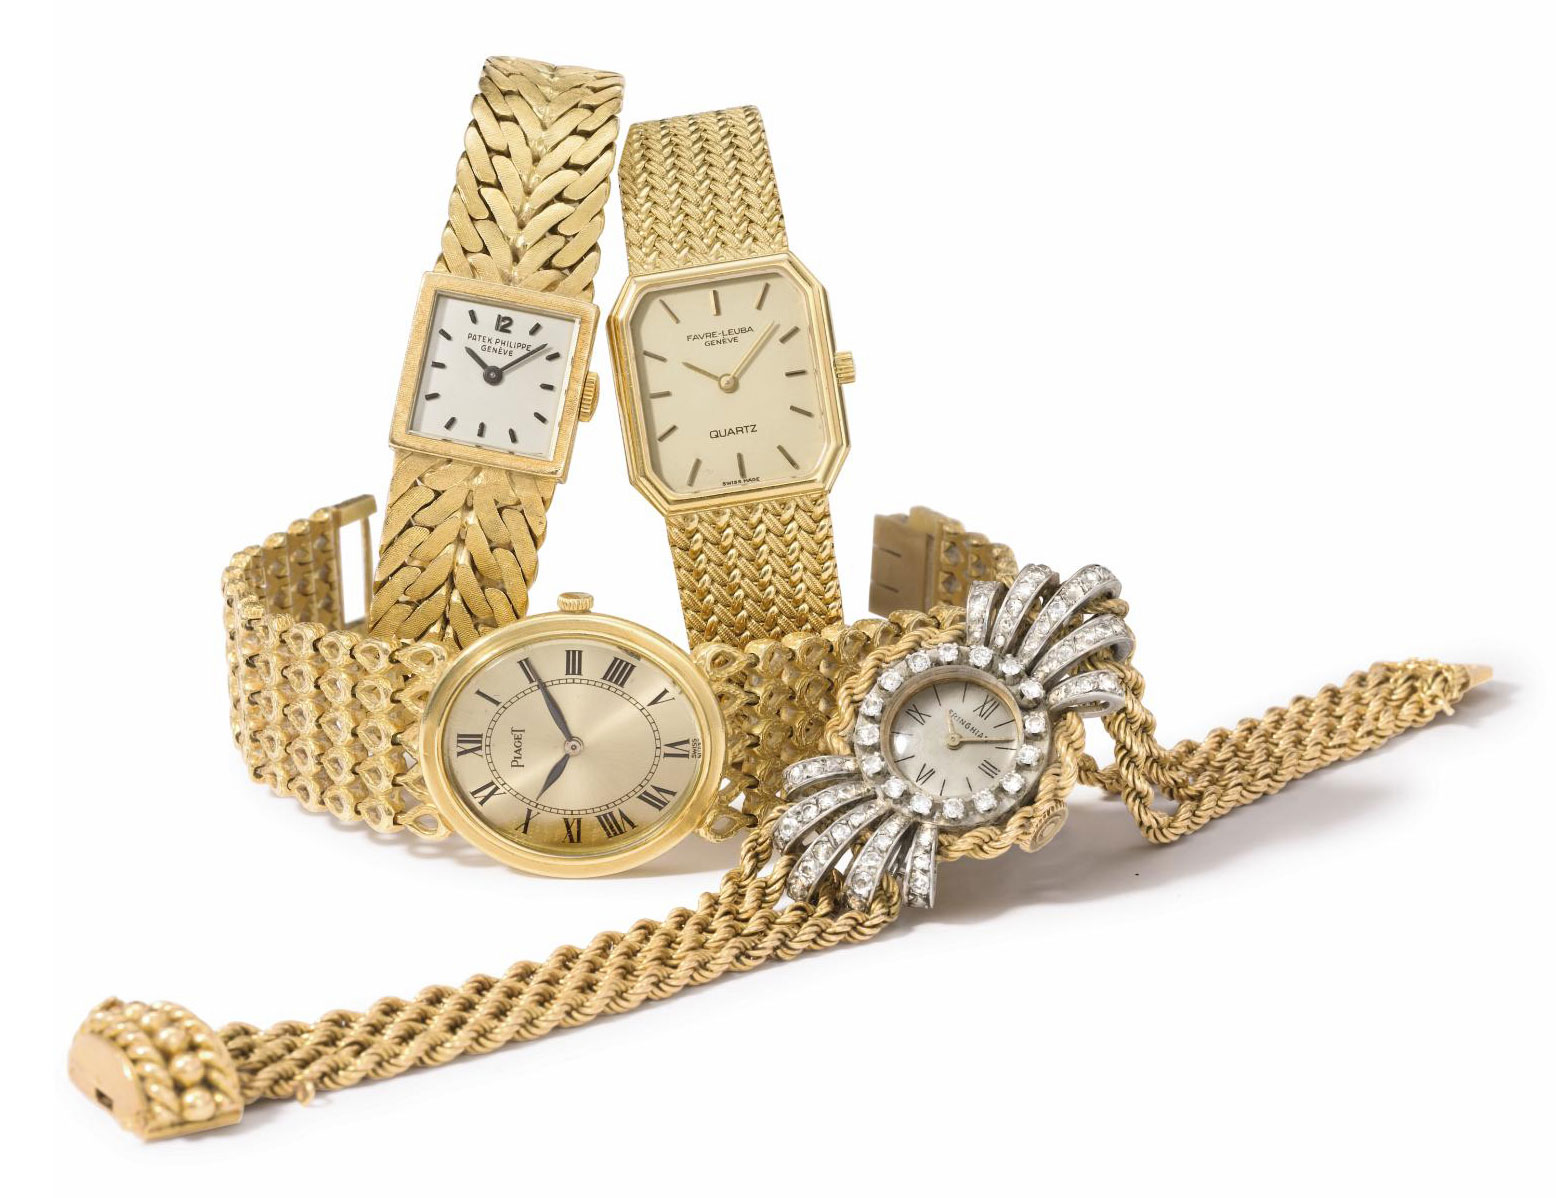 Patek Philippe, Piaget, Favre-Leuba. A lot of three lady's 18K gold wristwatches with bracelets and one lady's 18K gold, platinum and diamond-set wristwatch with bracelet